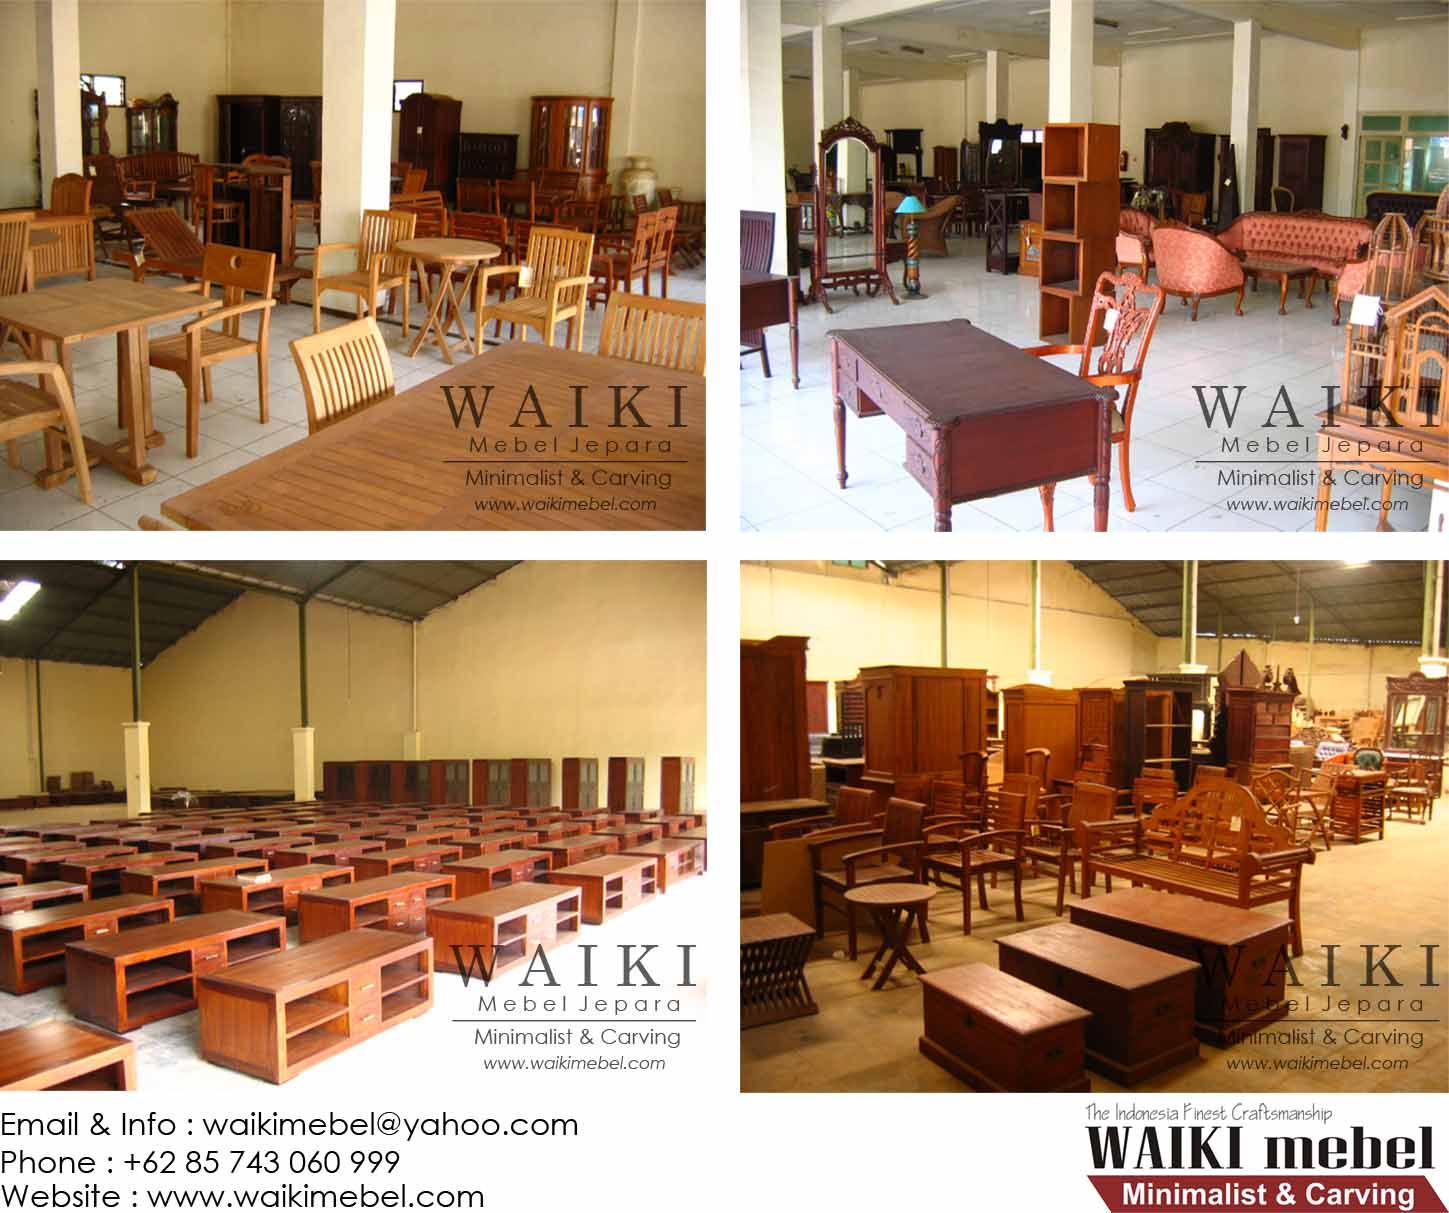 Waiki mebel indoor carving and minimalist furniture manufacturer jepara Uni home furniture indonesia